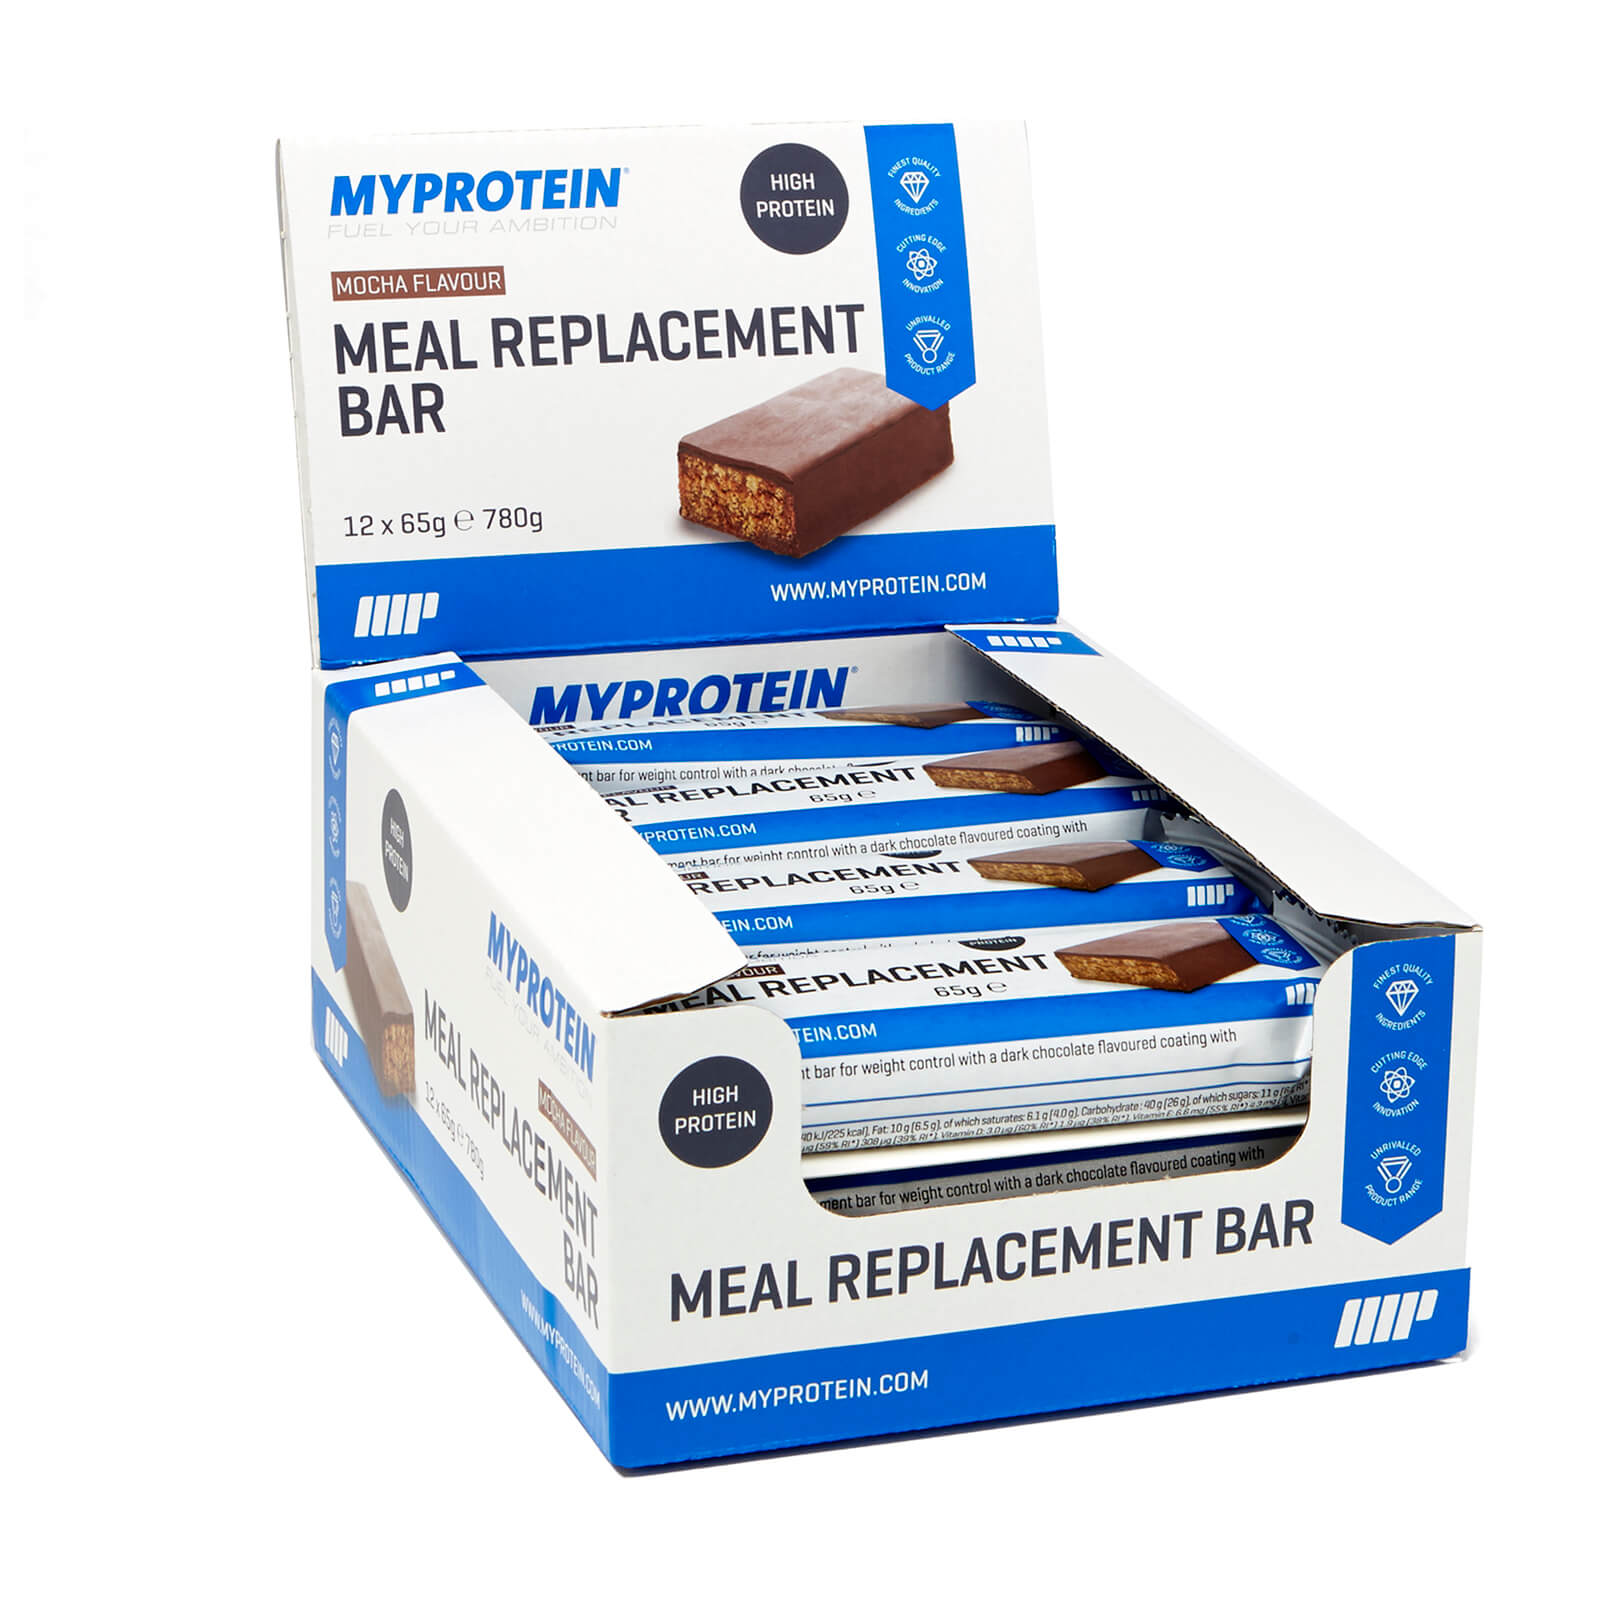 Meal Replacement Bar, Mocha, 12 x 65g